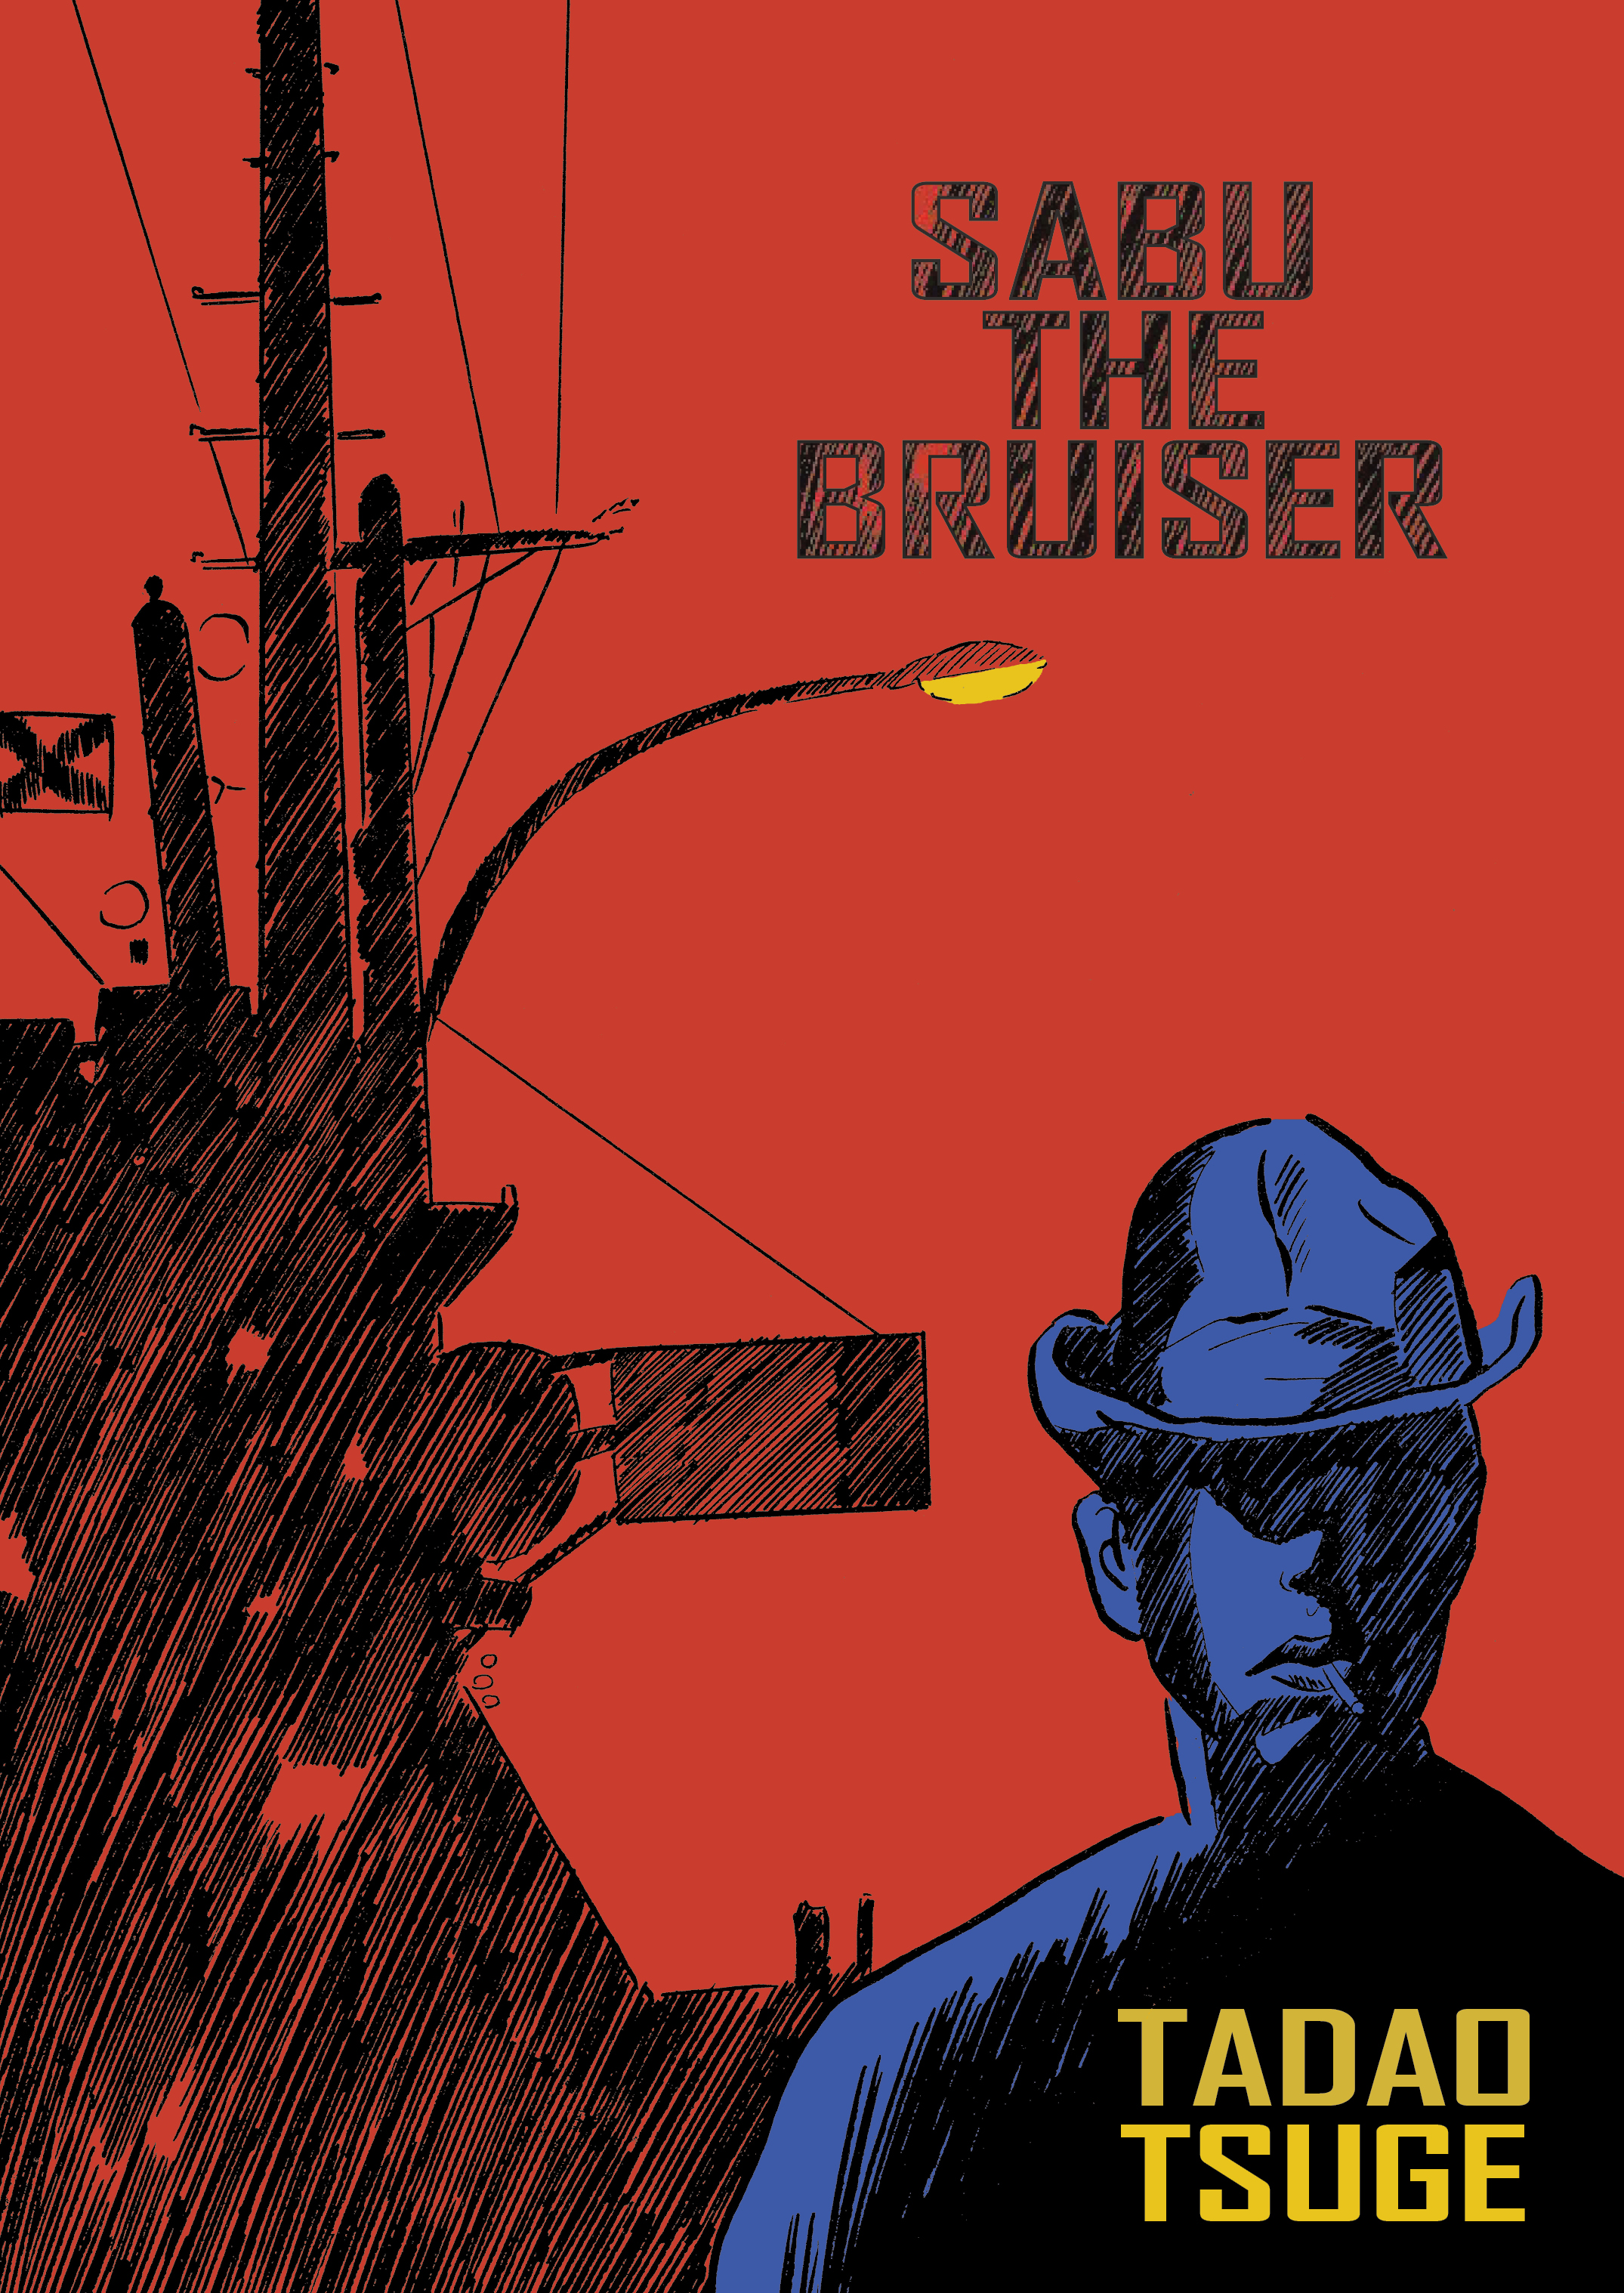 Tadao Tsuge - Book Cover - Sabu The Bruiser